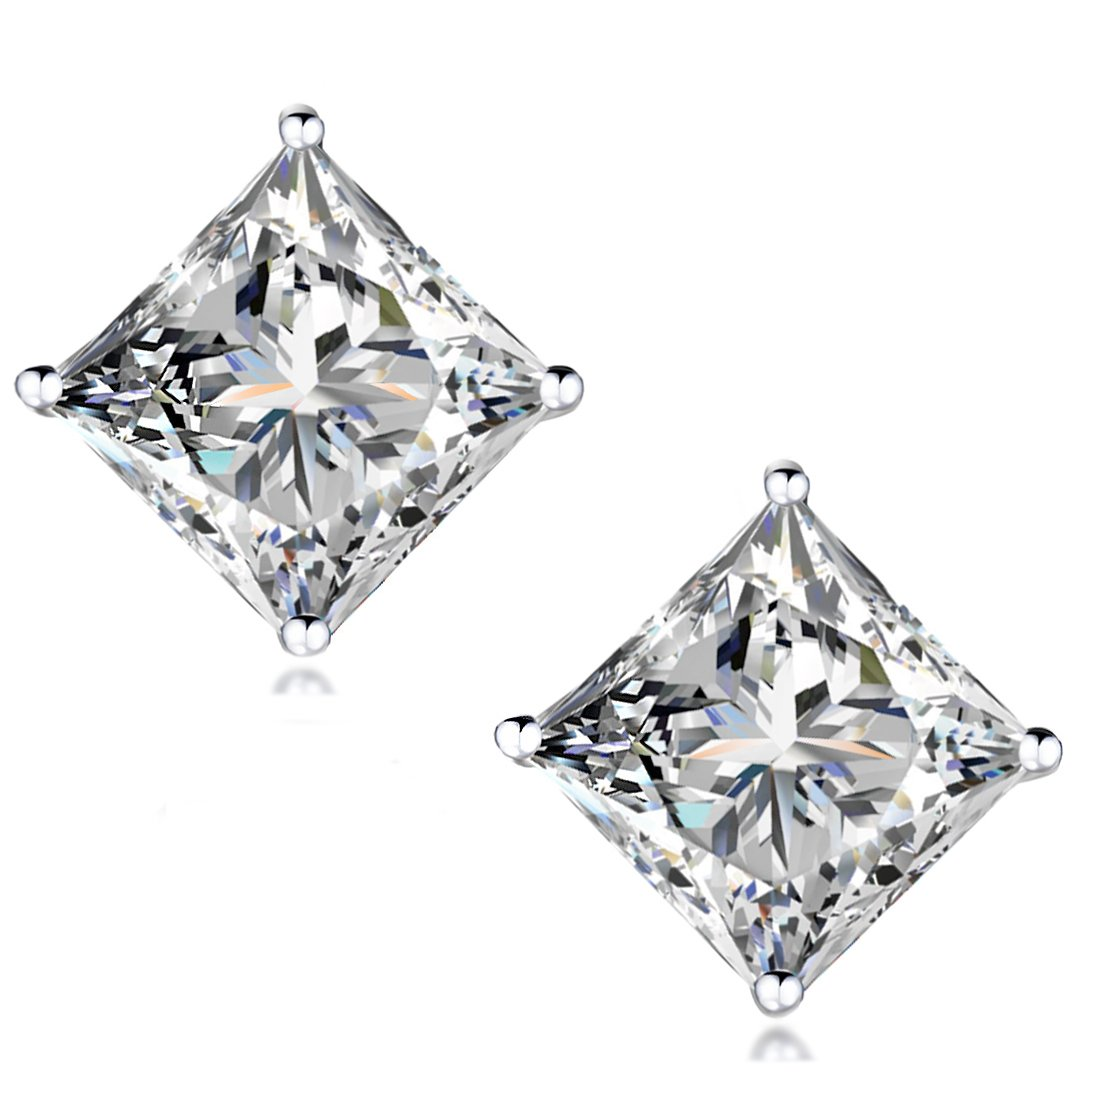 """STUNNING FLAME"" 18K Gold Plated Silver Princess Cut Simulated Diamond CZ Stud Earrings Chic Code 1.0ct CC-FD-DJZ-5"